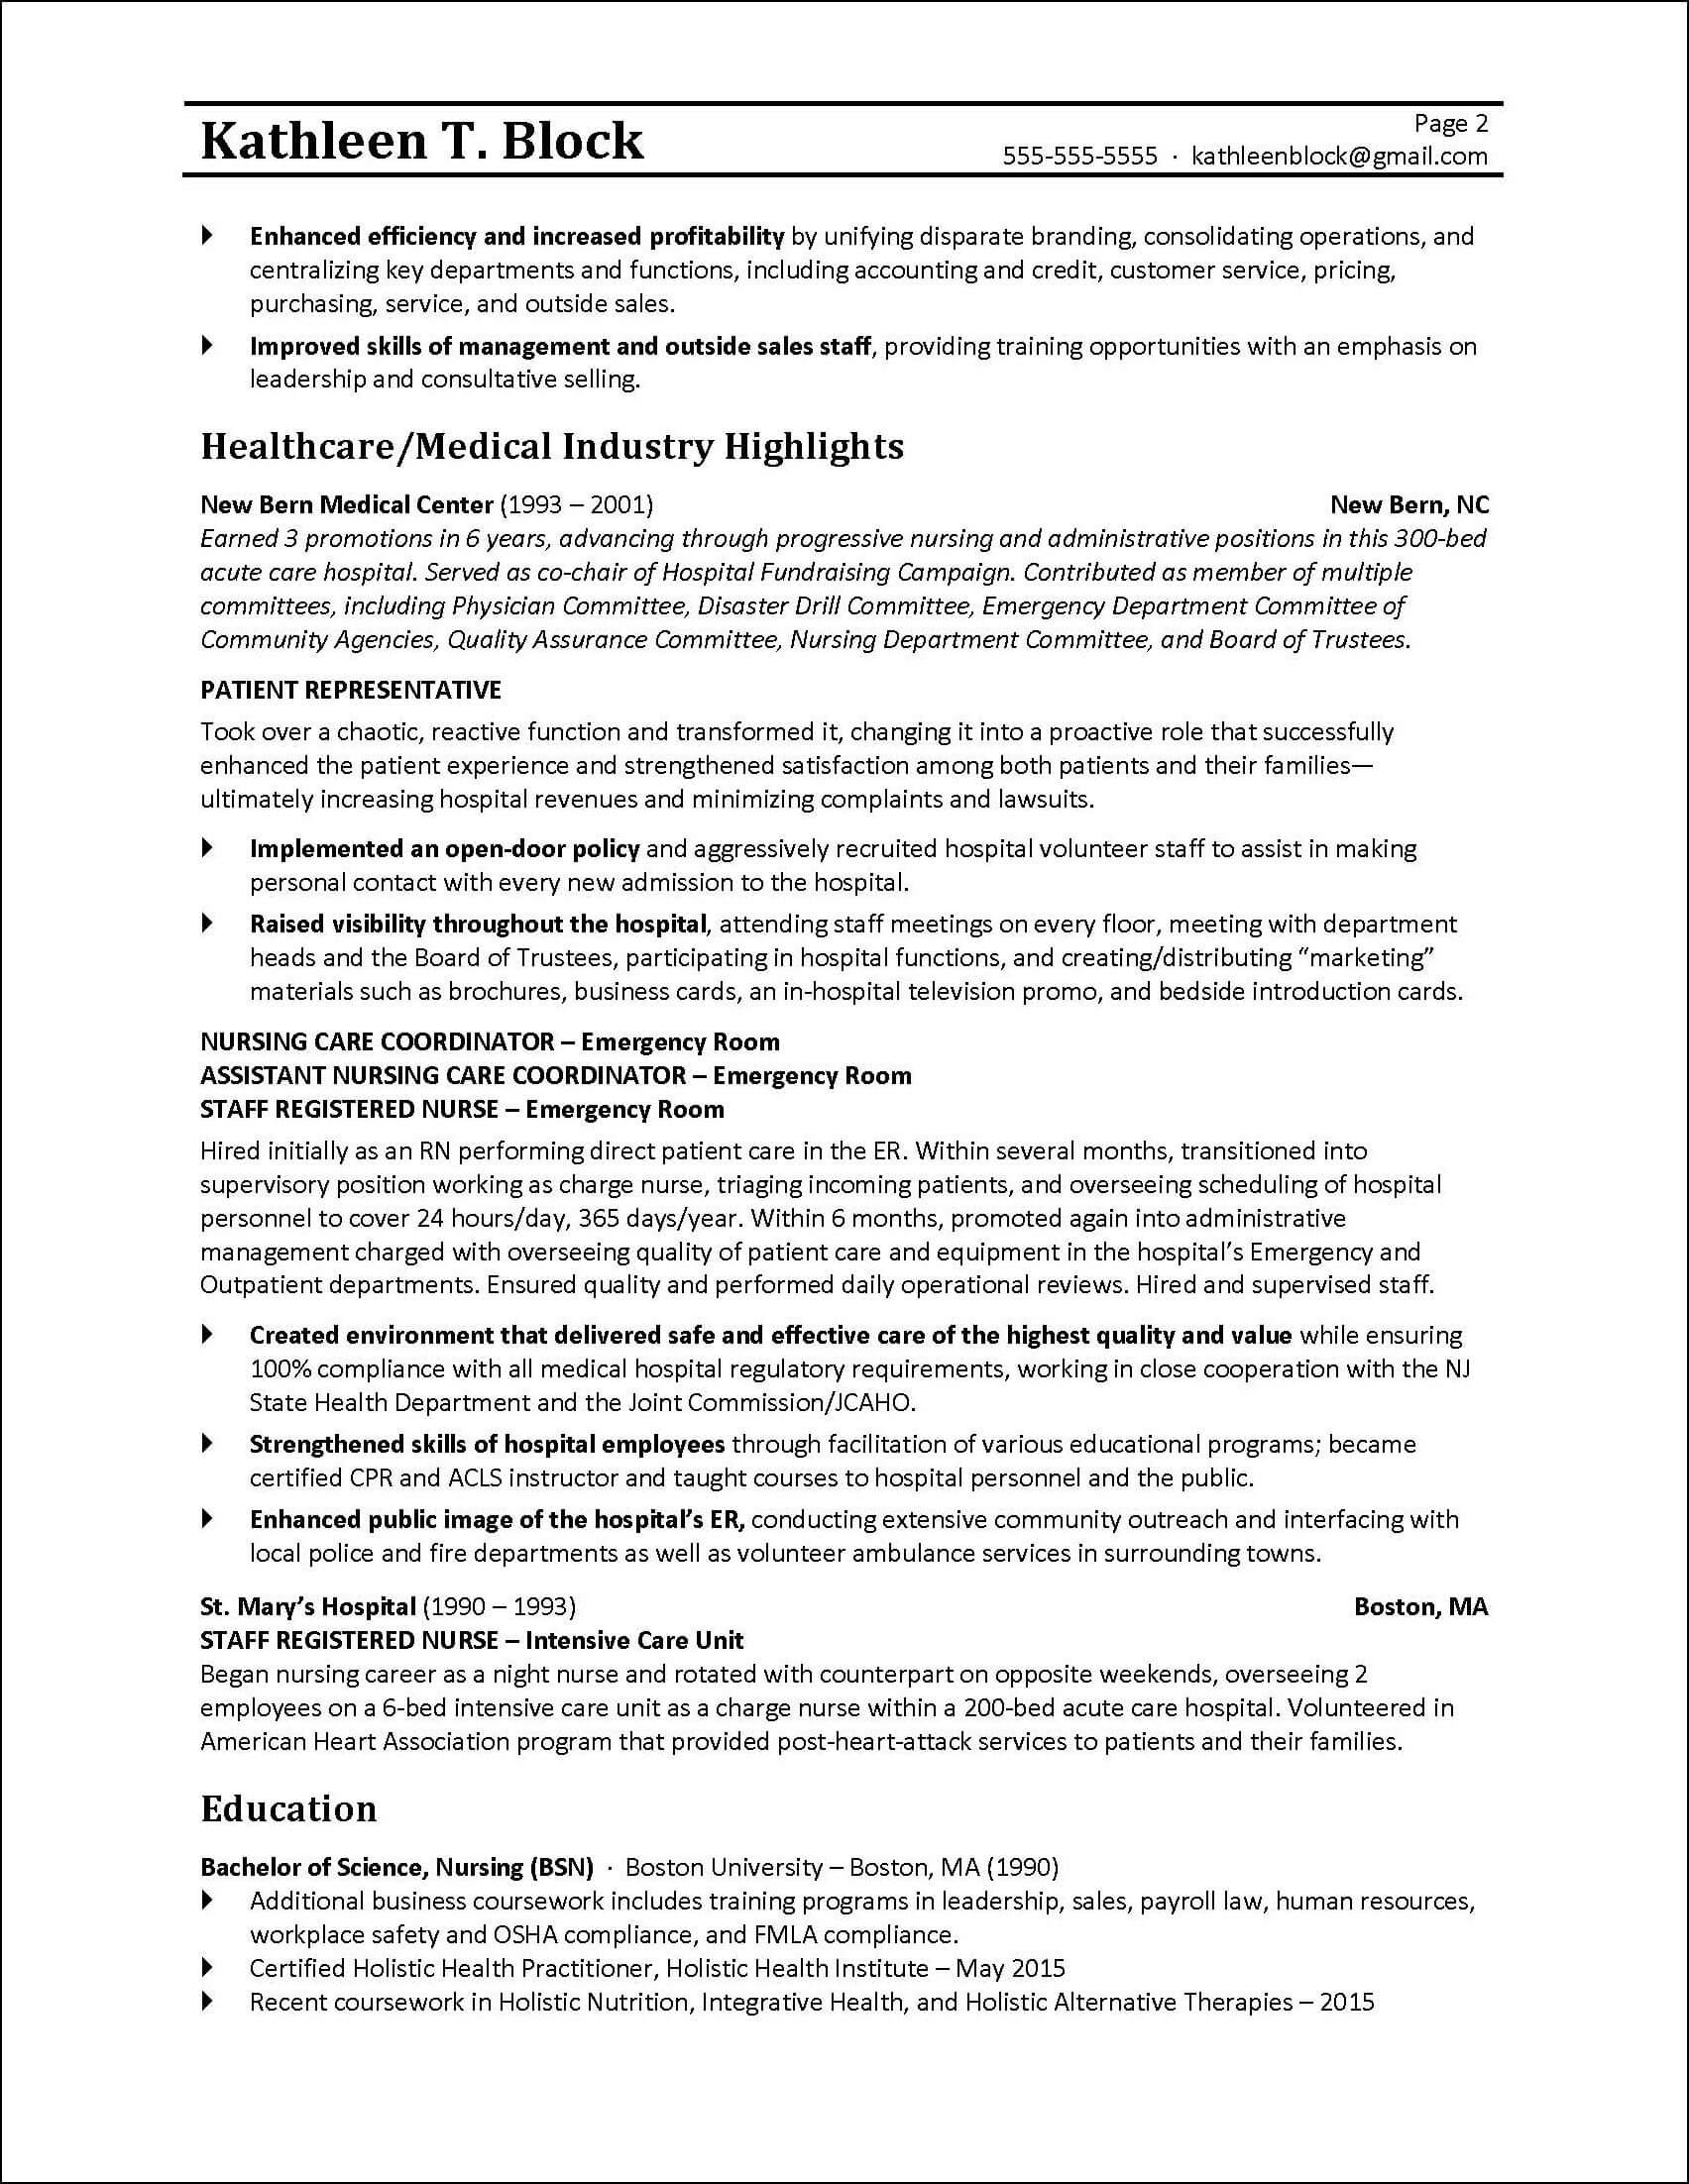 Resume Examples Healthcare Management Resume Sample Healthcare Industry